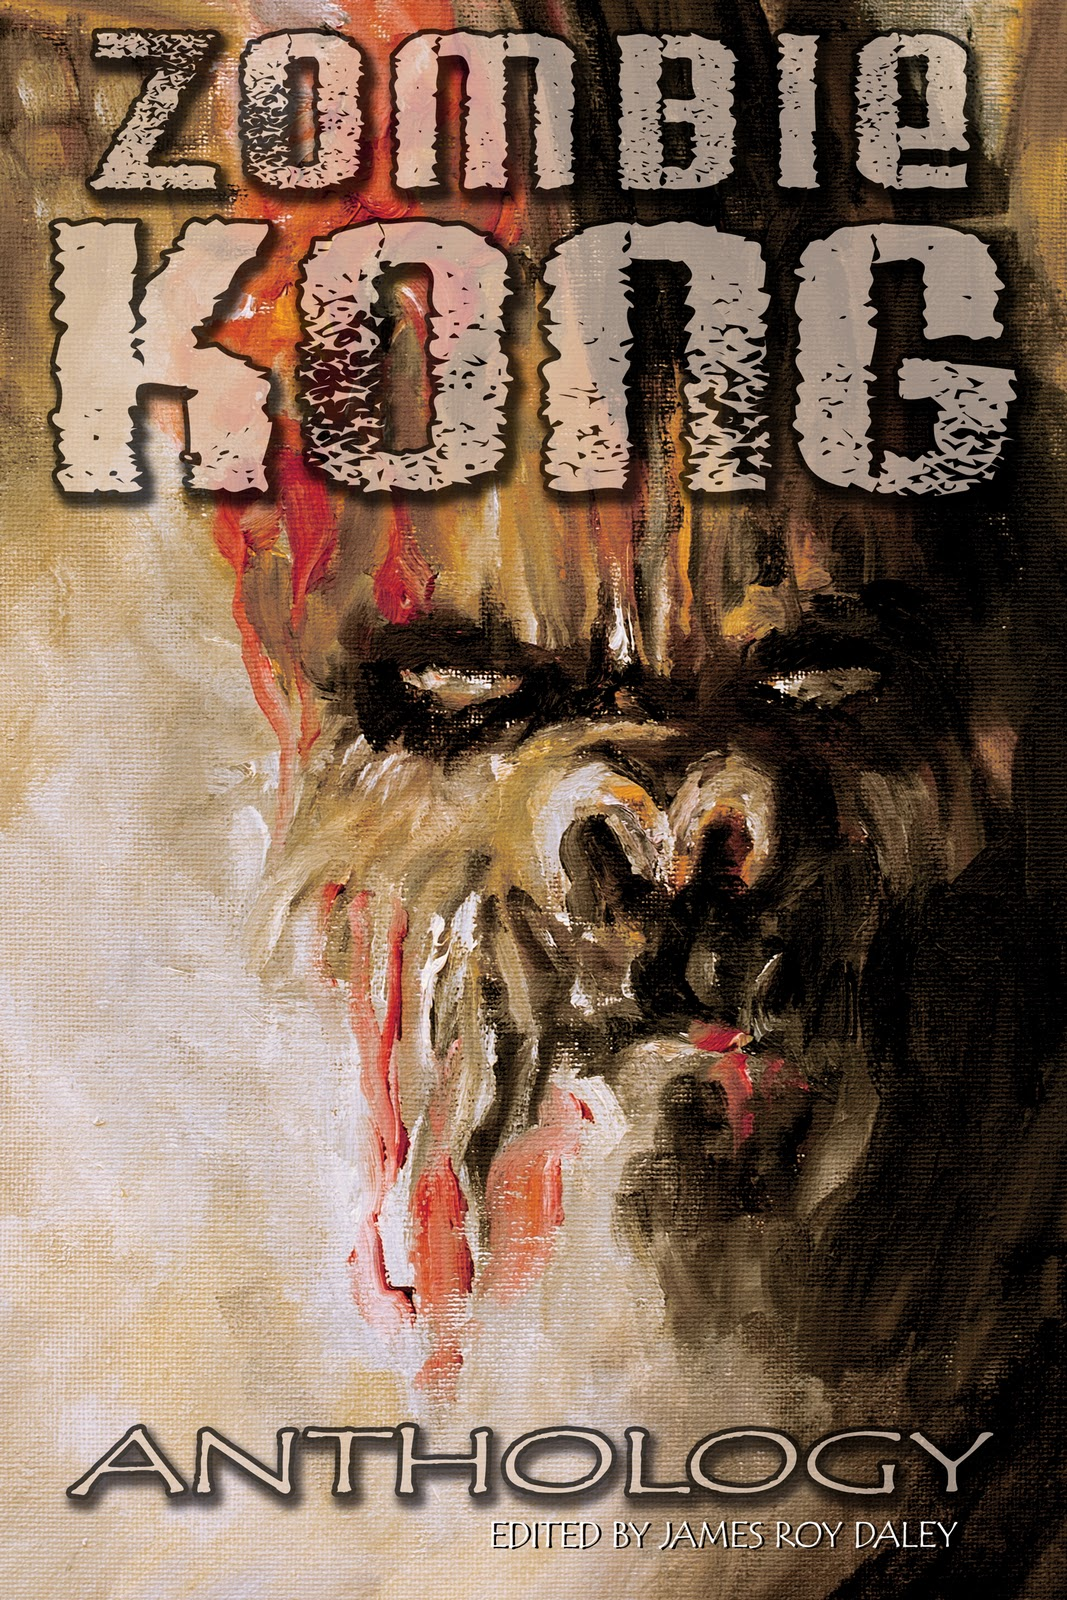 The Zombie Kong Anthology Is Finally Here, And The Craziest Thing Happened:  It Brought A Little Friend Along For The Ride A Zombie Kong Novella